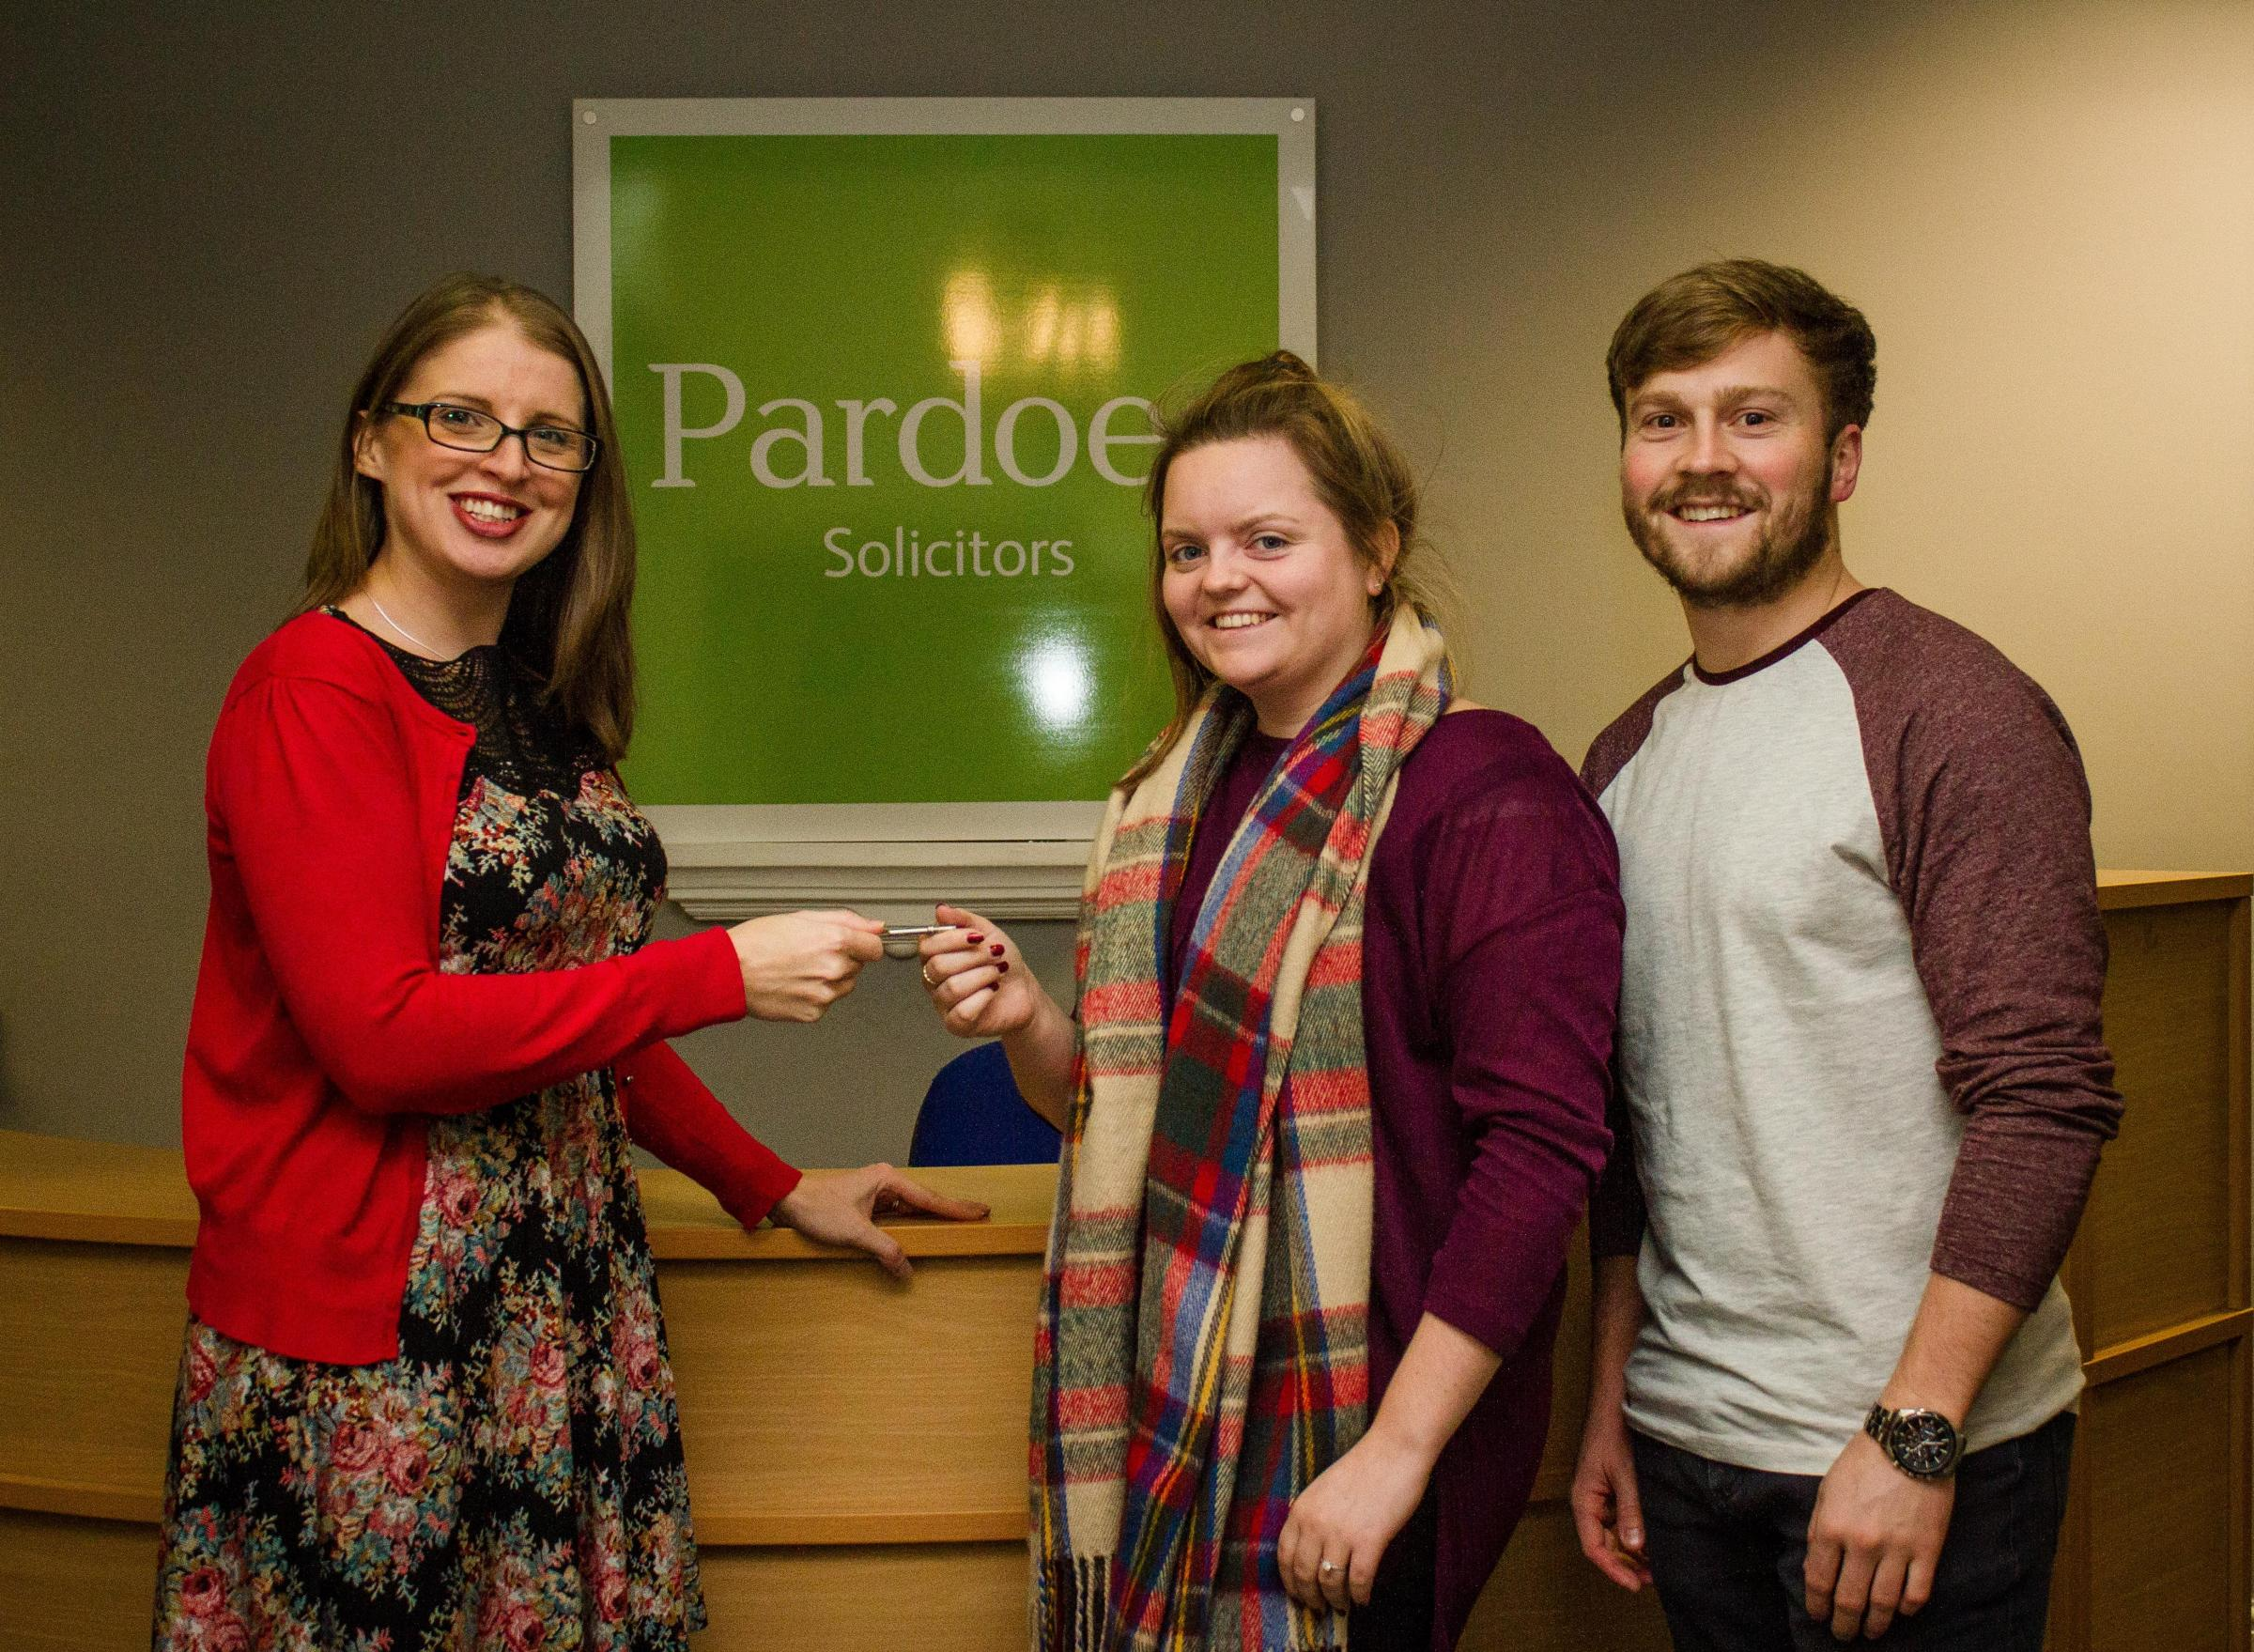 Laura Godfrey, from Pardoes Solicitors, handing Siân Woodhouse and Jacob Smith the keys to their new Taunton home